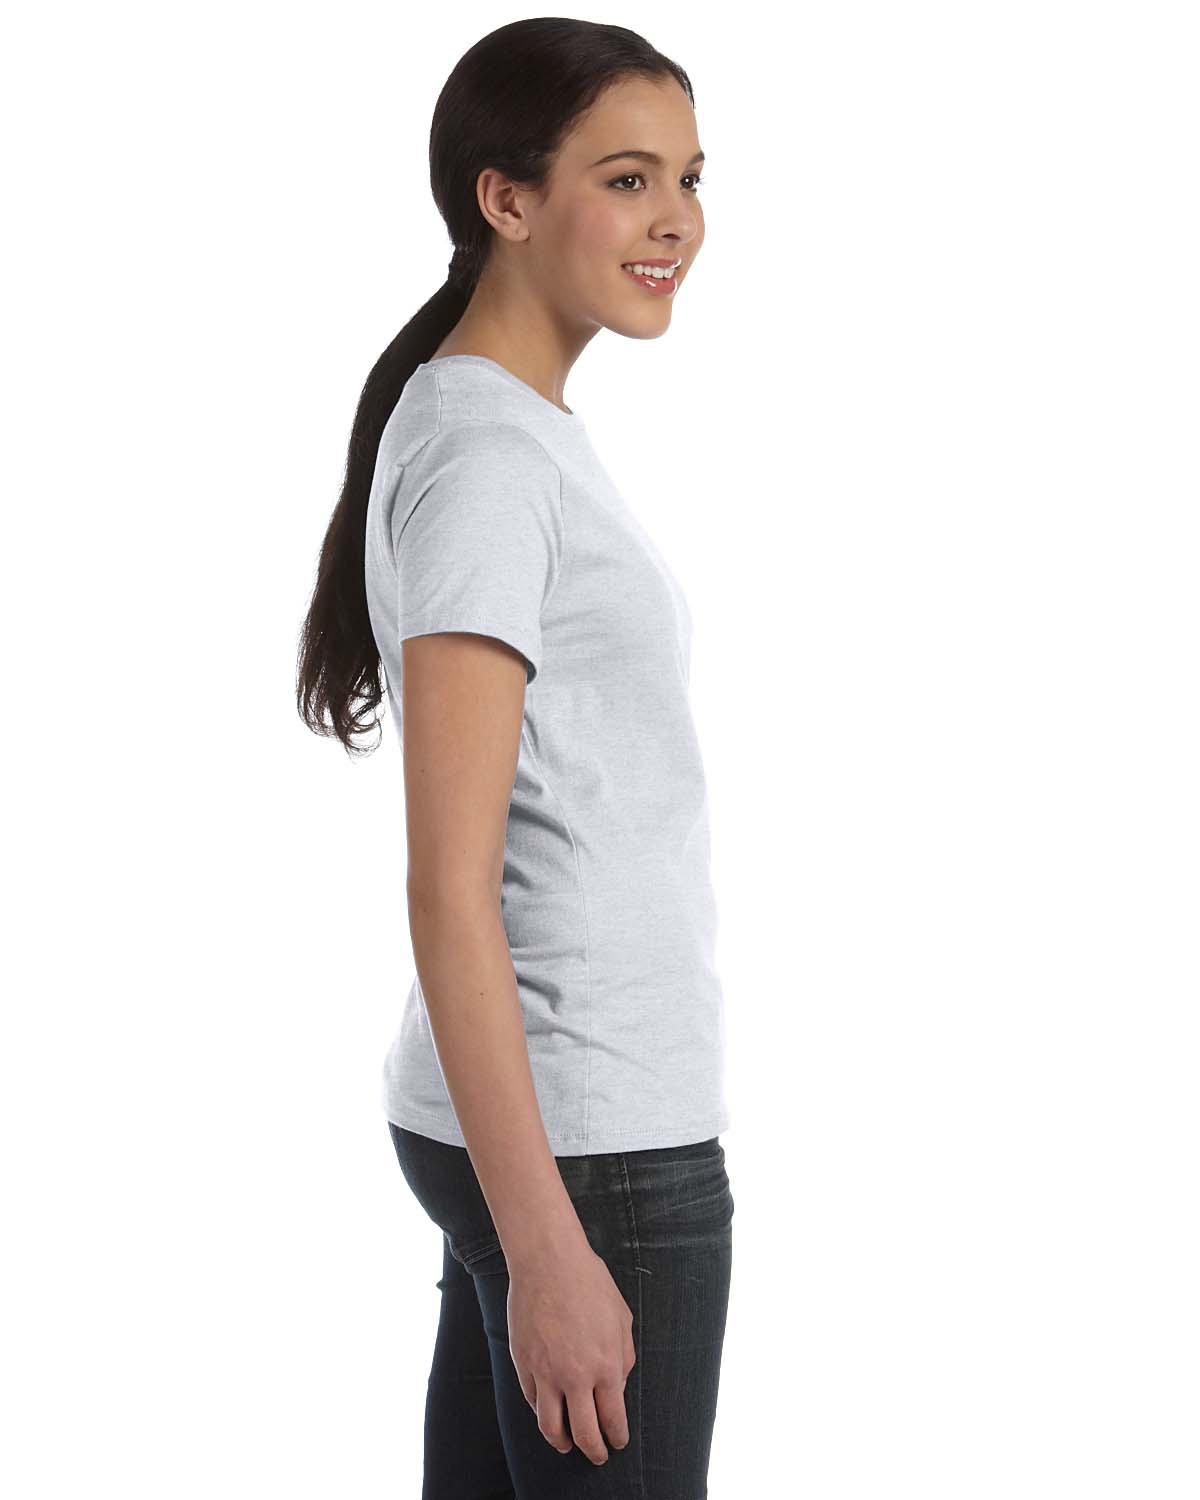 'Hanes SL04 Ladies' Ringspun Cotton nano-T T-Shirt'